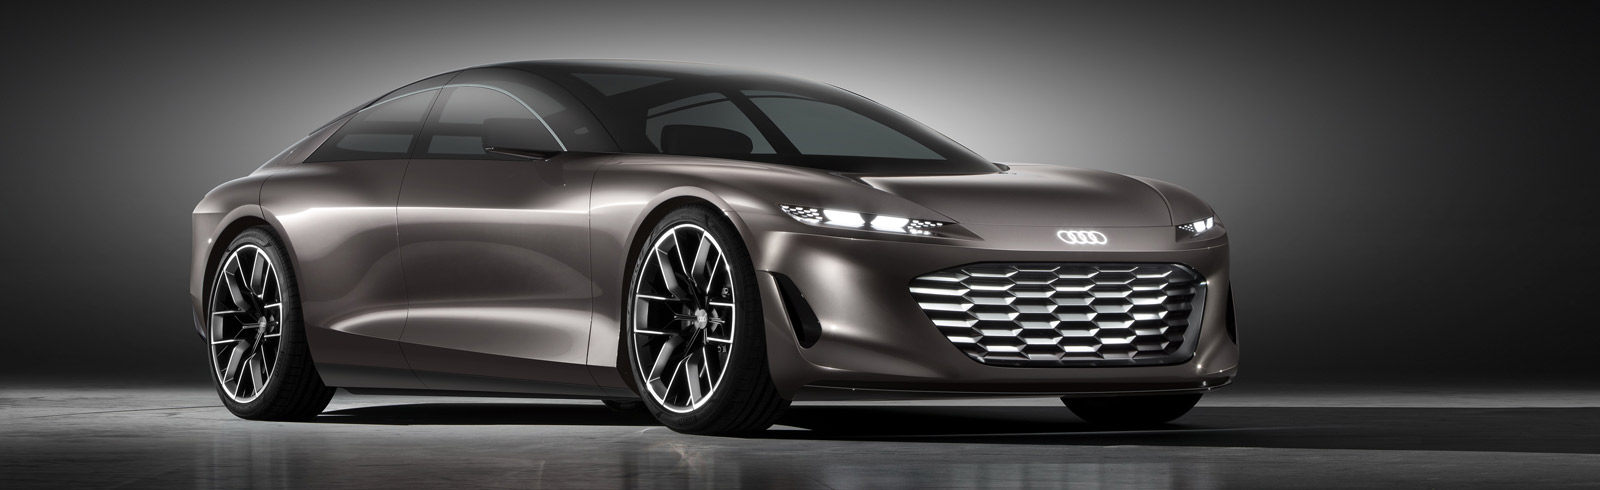 Audi grandsphere concept - luxury sedan with an electric drive system